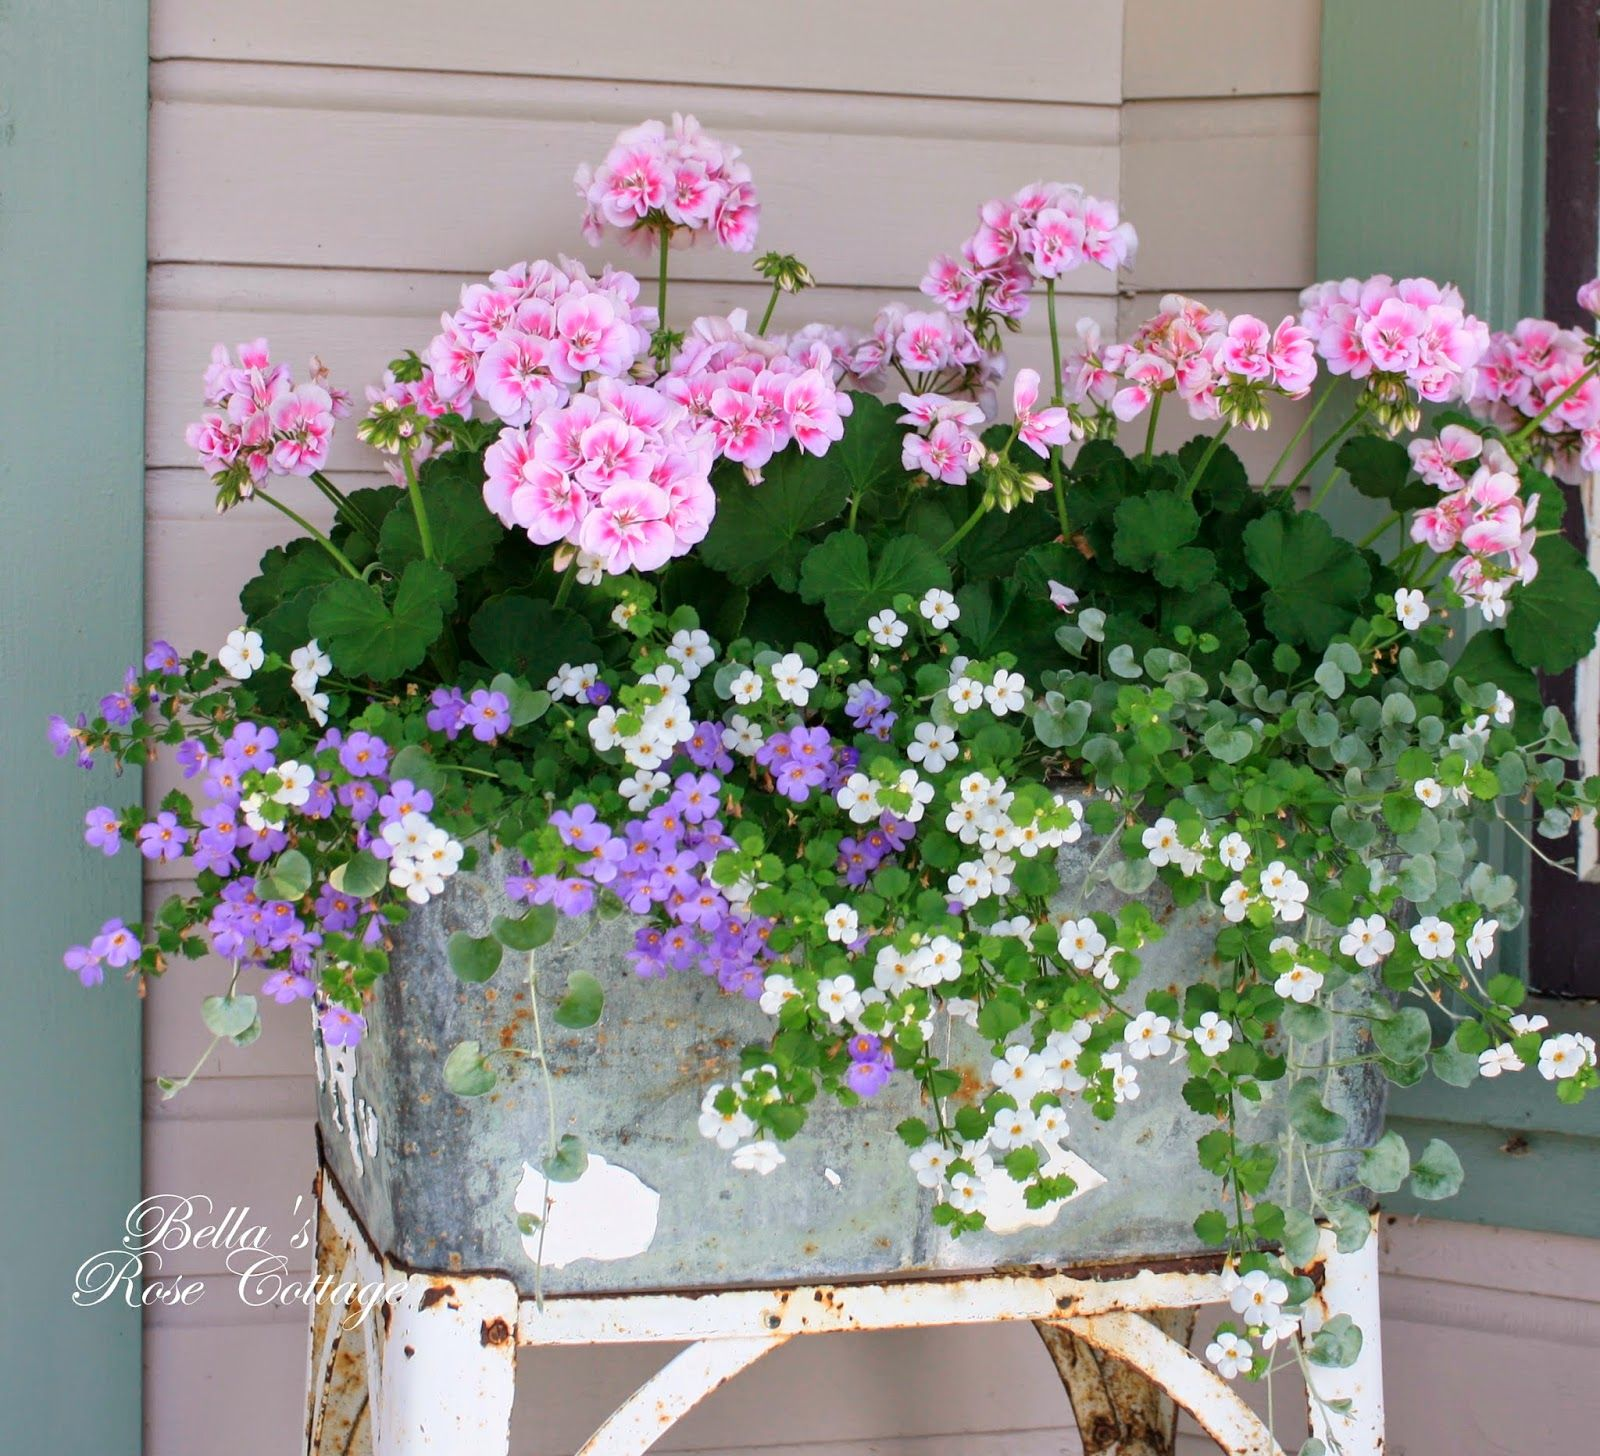 Cottage garden ideas from pinterest for our blue cottage repurposed vintage agate and zinc vintage containers used to hold potted flowers what an easy way to dress up plain flower pots via dagmars home mightylinksfo